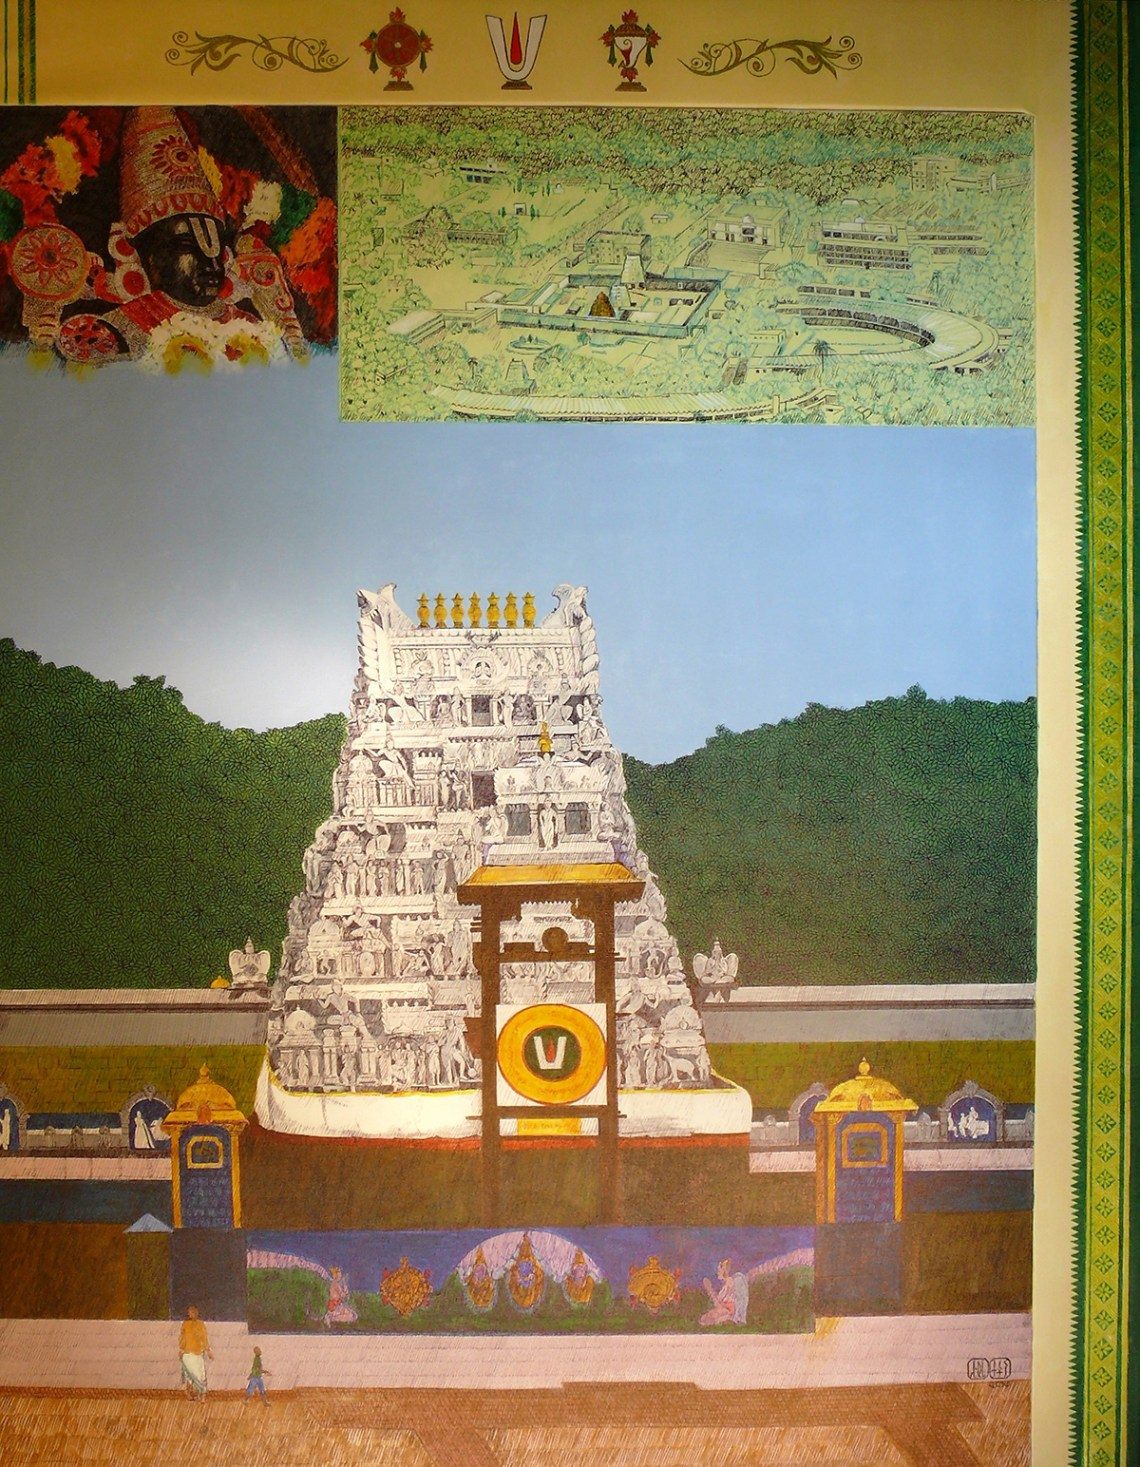 Tirupati Gopuram entrance, painting by Sandhya Ketkar, Acrylic & Ink on Canvas, 52 x 40 inches